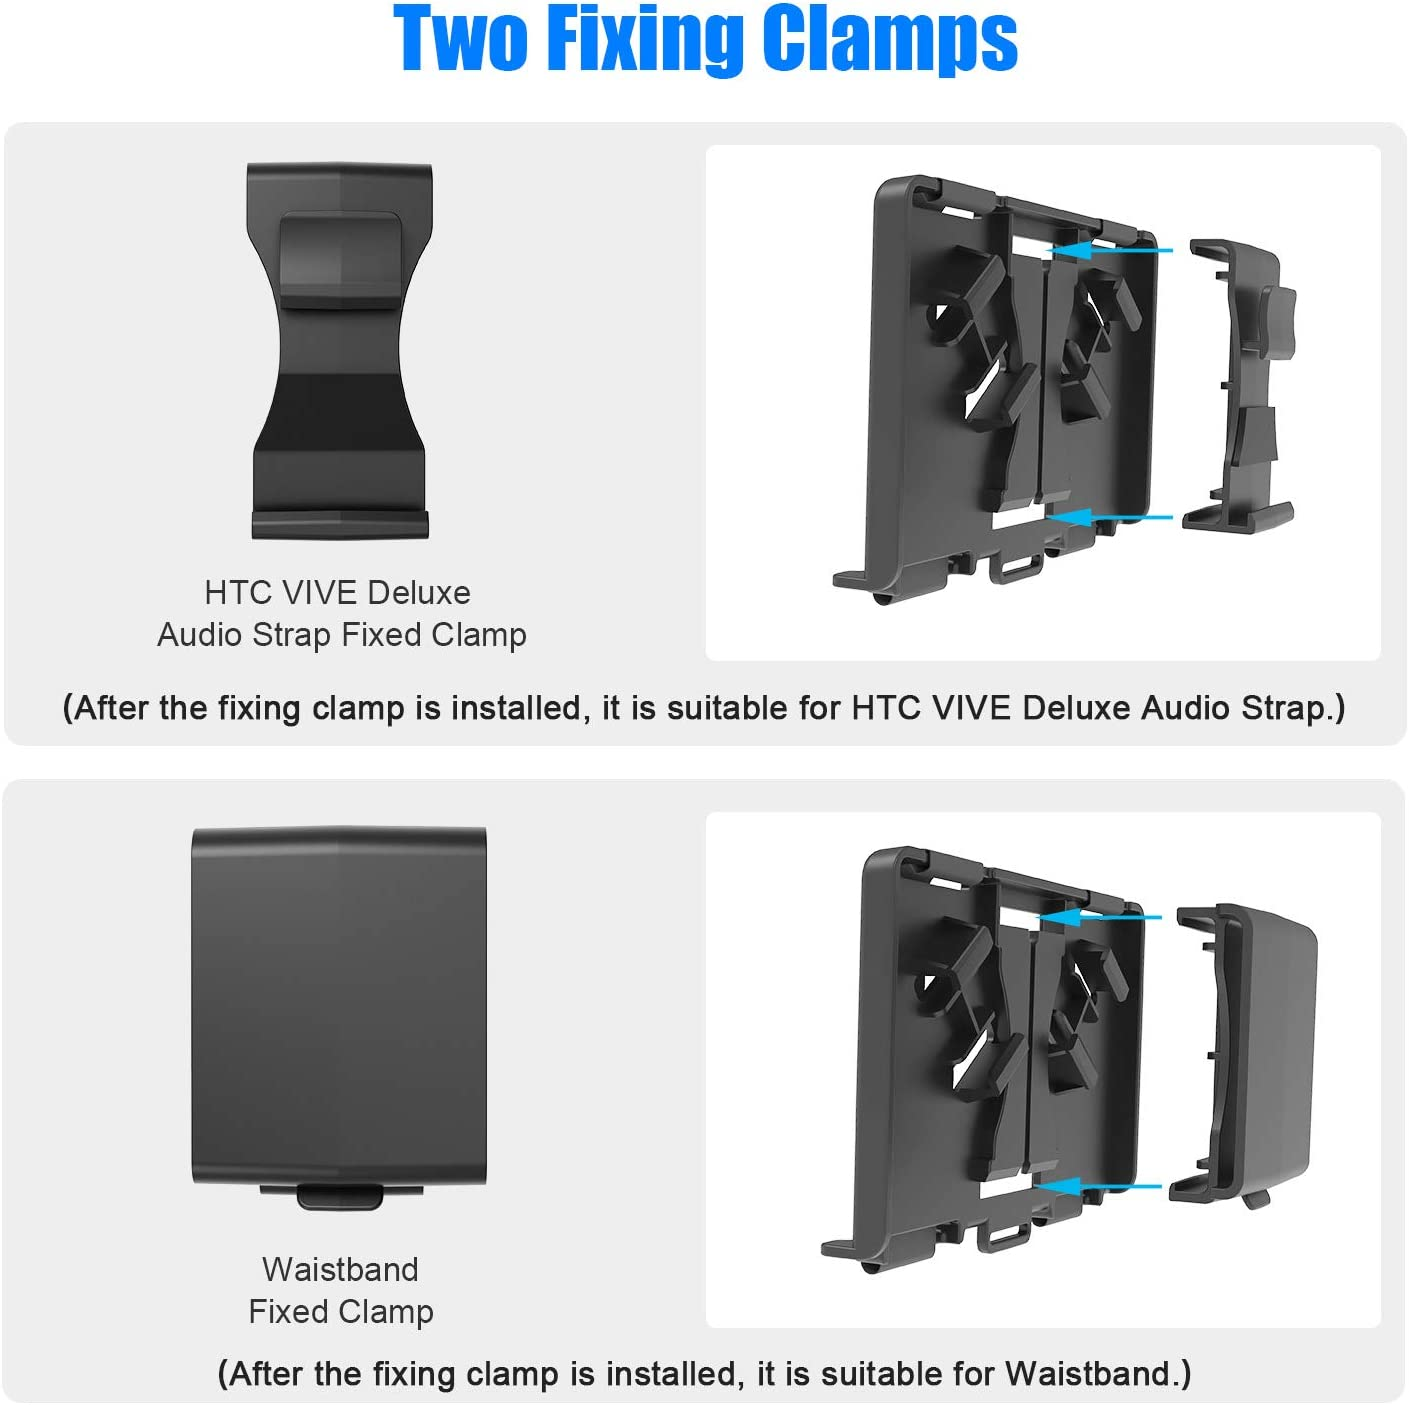 AMVR Powerbank Fixing Bracket with USB Cable Compatibly Multiple Sizes Mobile Power Battery Holder for Oculus Quest or Vive Deluxe Audio Strap Fixed on The VR Headset Strap or on The Waist